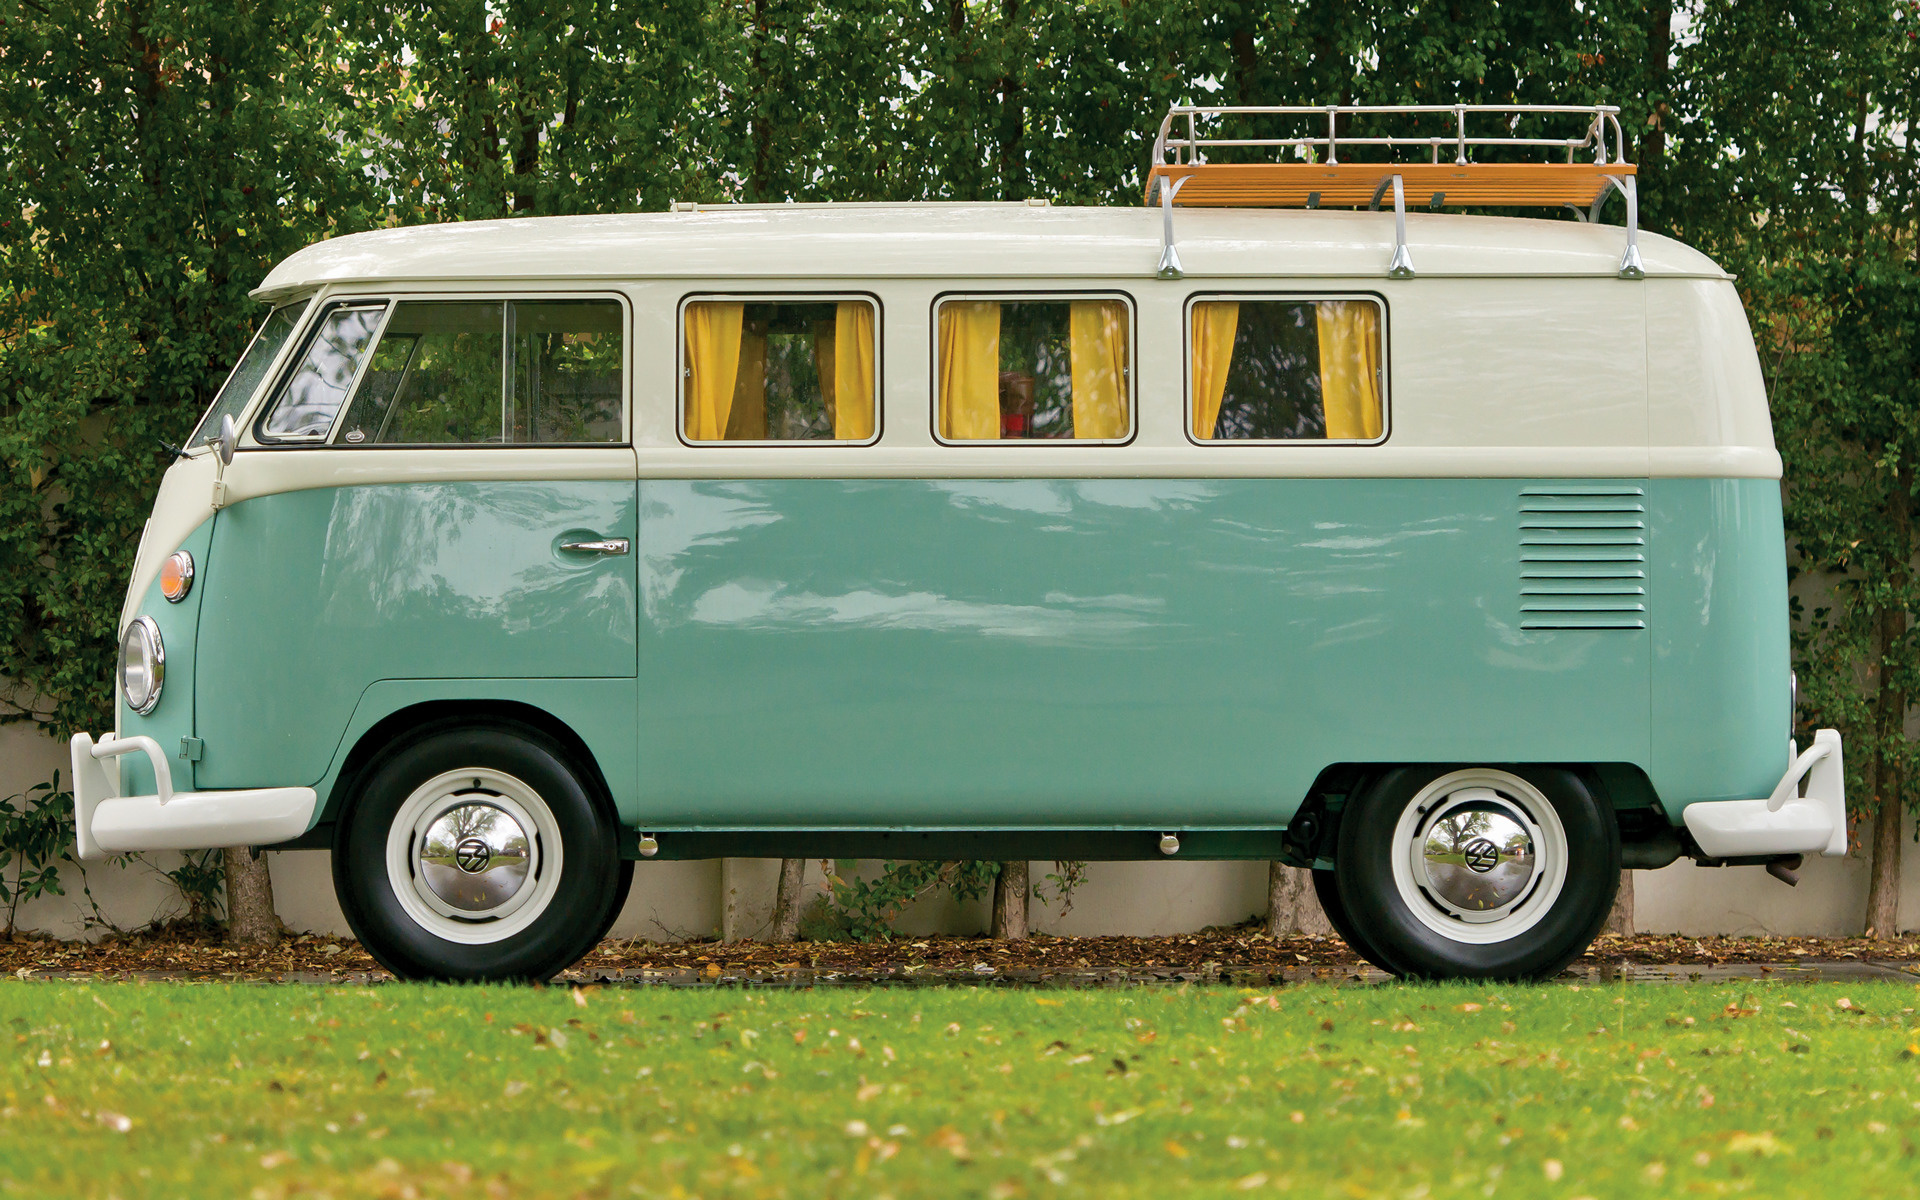 Volkswagen t1 westfalia camper 1962 wallpapers and hd images car wide 85 volkswagen t1 westfalia camper thecheapjerseys Choice Image